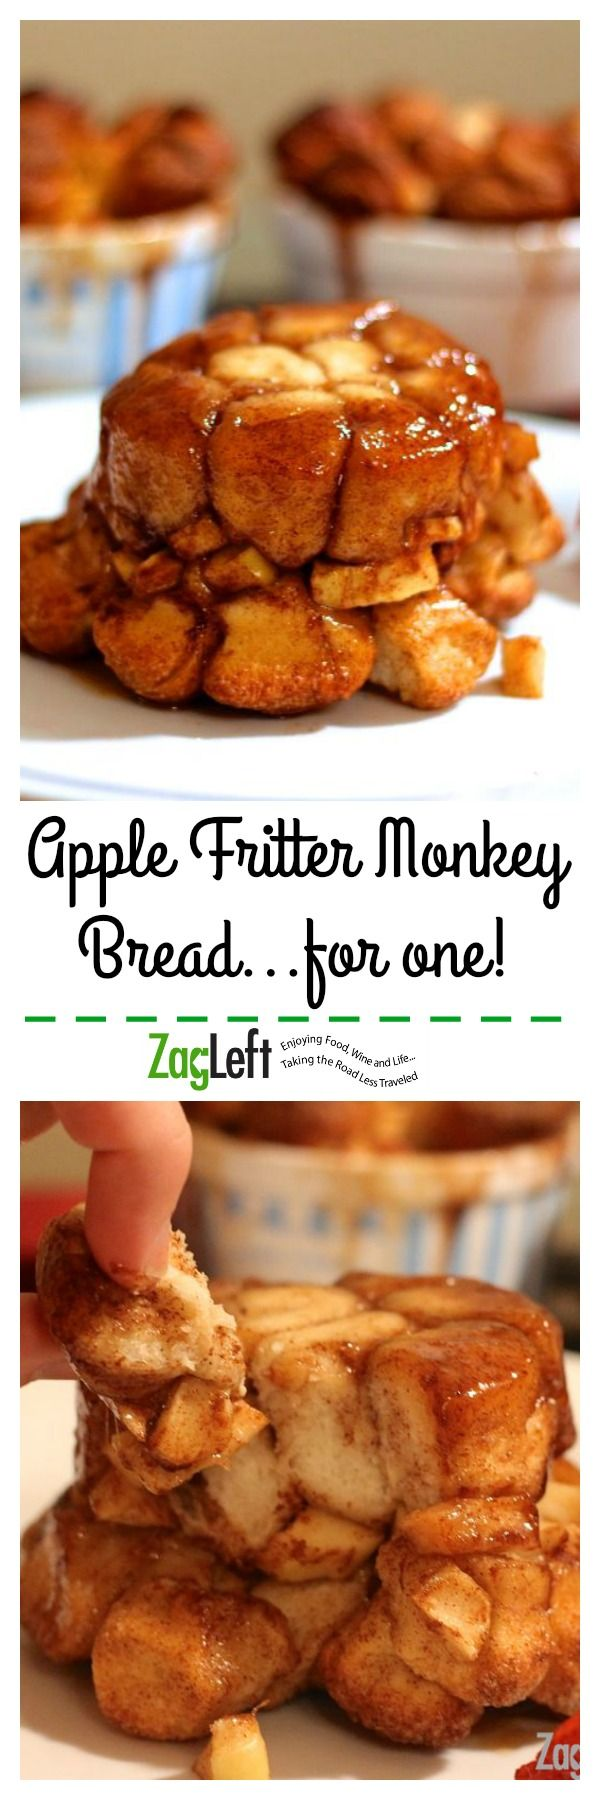 Apple Fritter Monkey Bread made with refrigerator biscuits is a single serving size of sweet pull-apart bread stuffed with layers of apples and brown sugar... zagleft.com